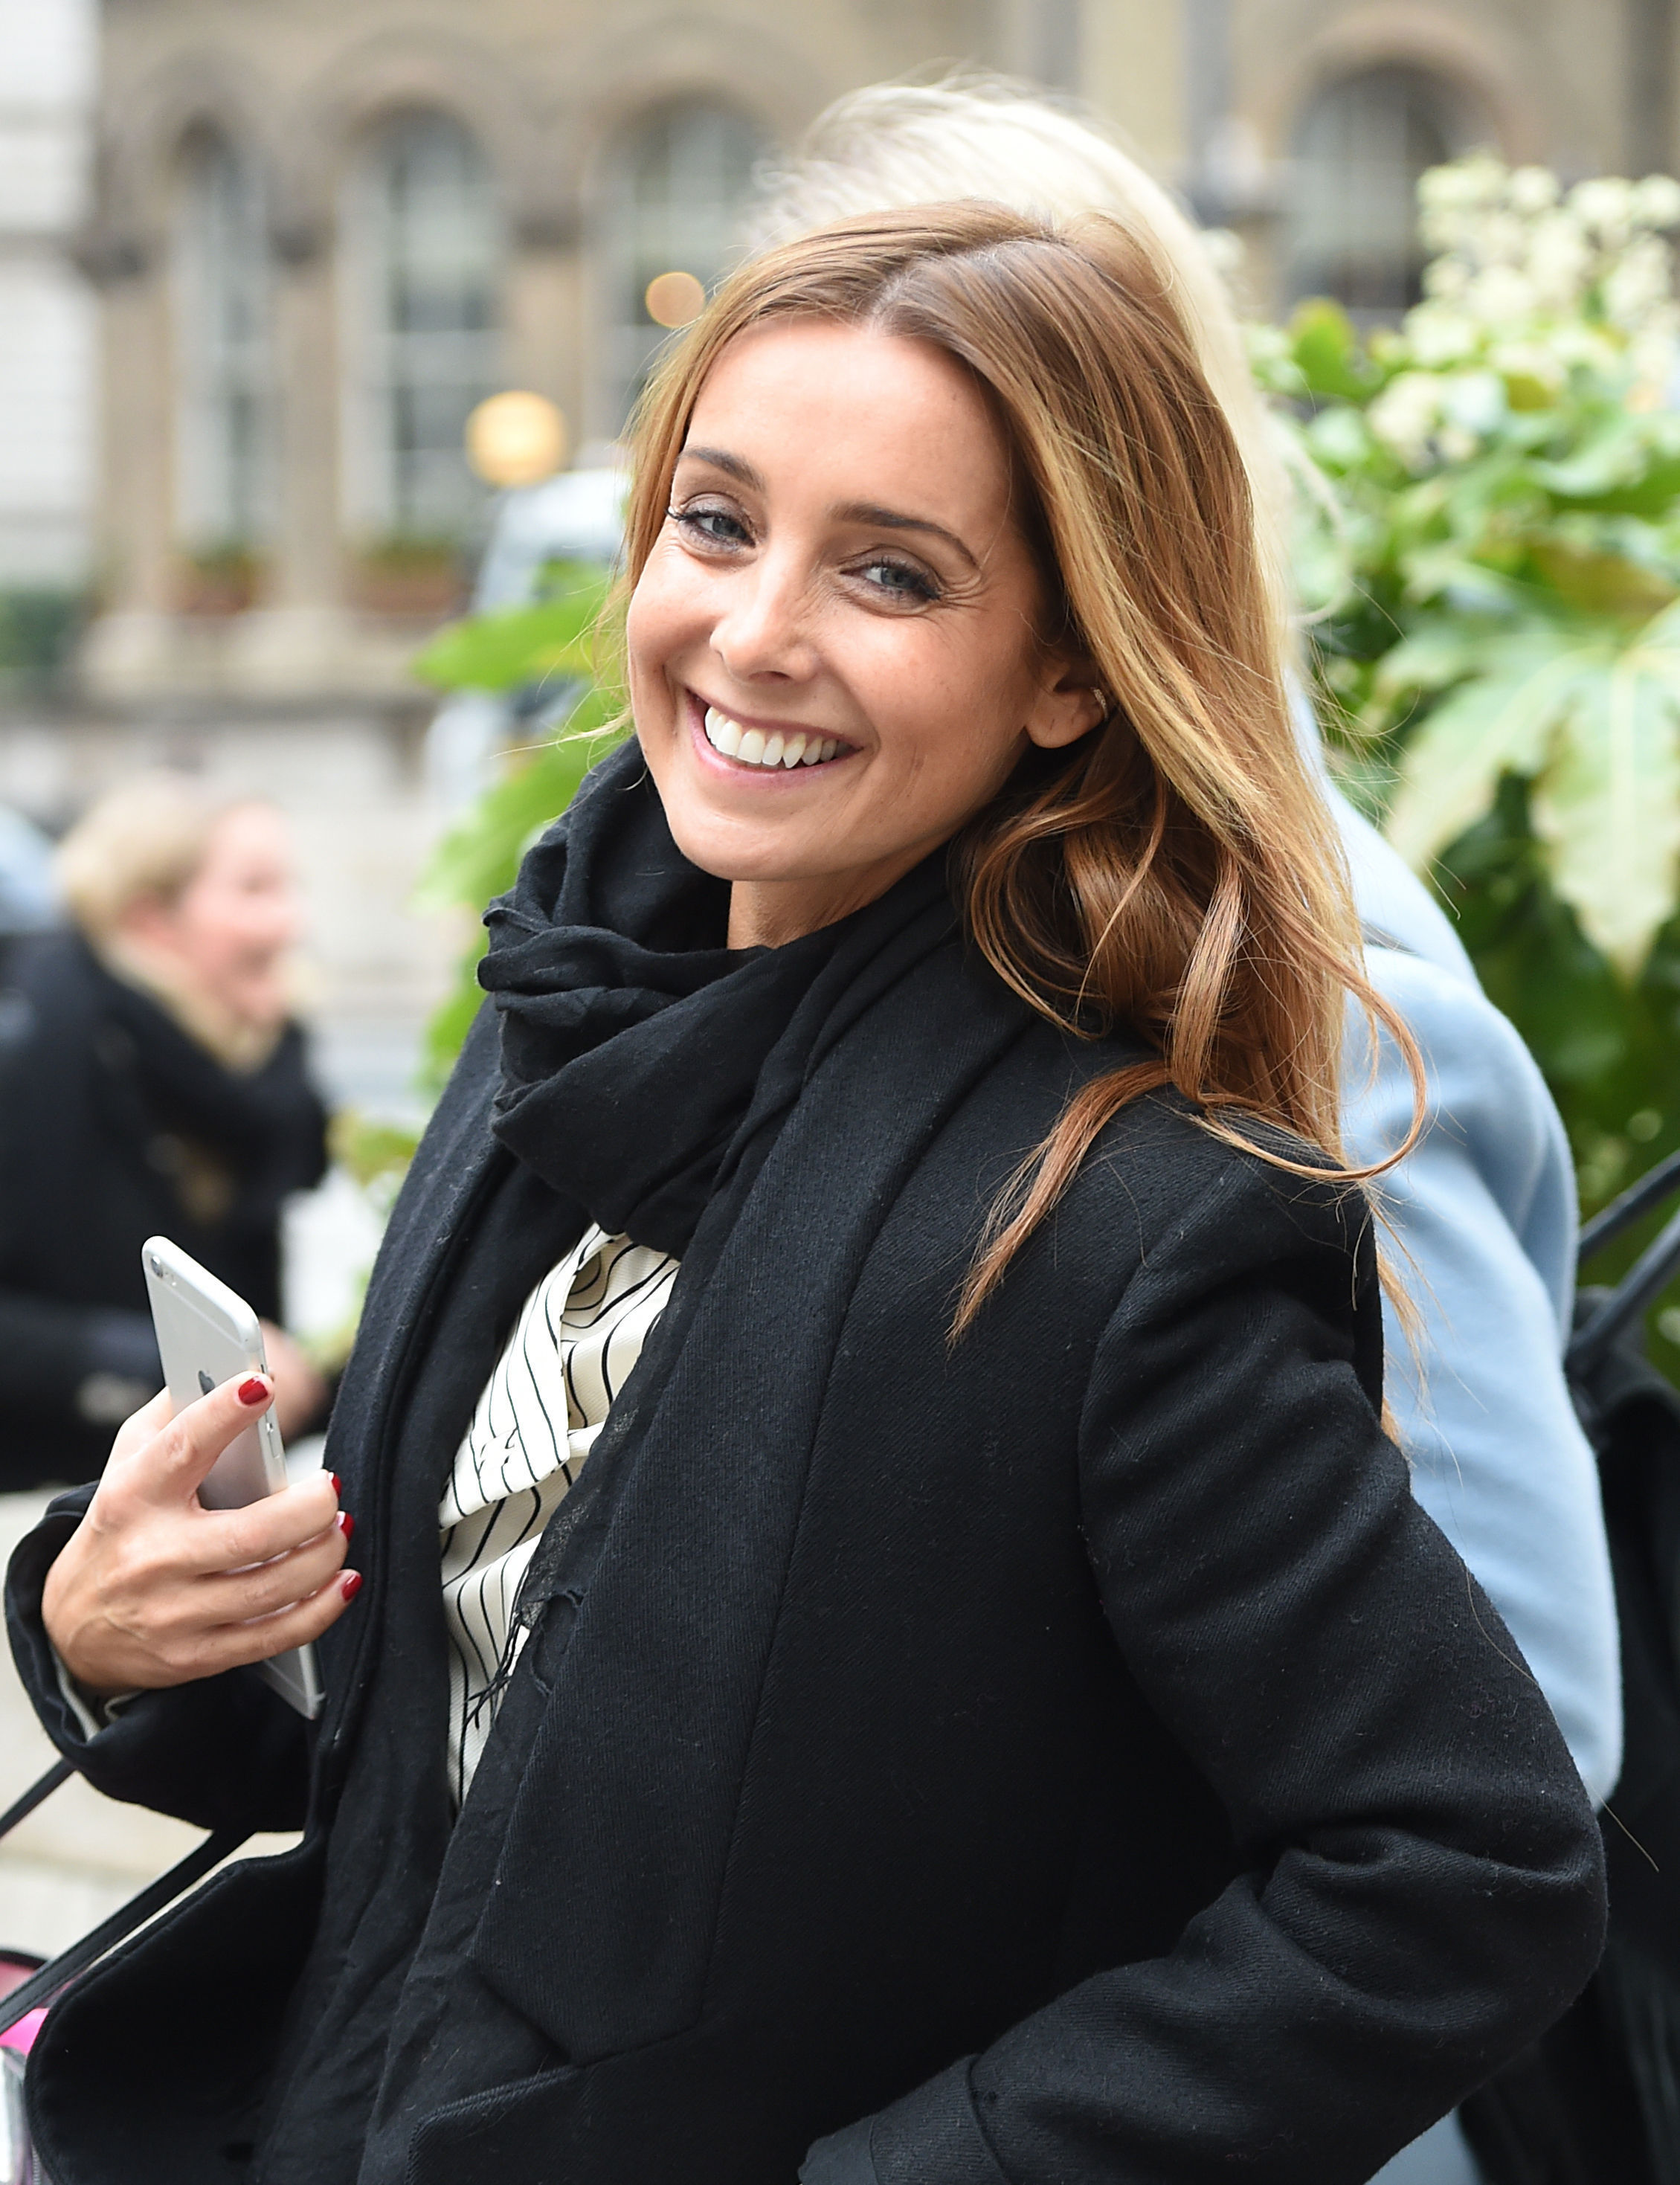 Strictly Come Dancing finalist Louise Redknapp leaves Broadcasting House, London, ahead of this weekend's final of the BBC's popular Saturday night TV show. PRESS ASSOCIATION Photo. Picture date: Thursday December 15, 2016. See PA story SHOWBIZ St